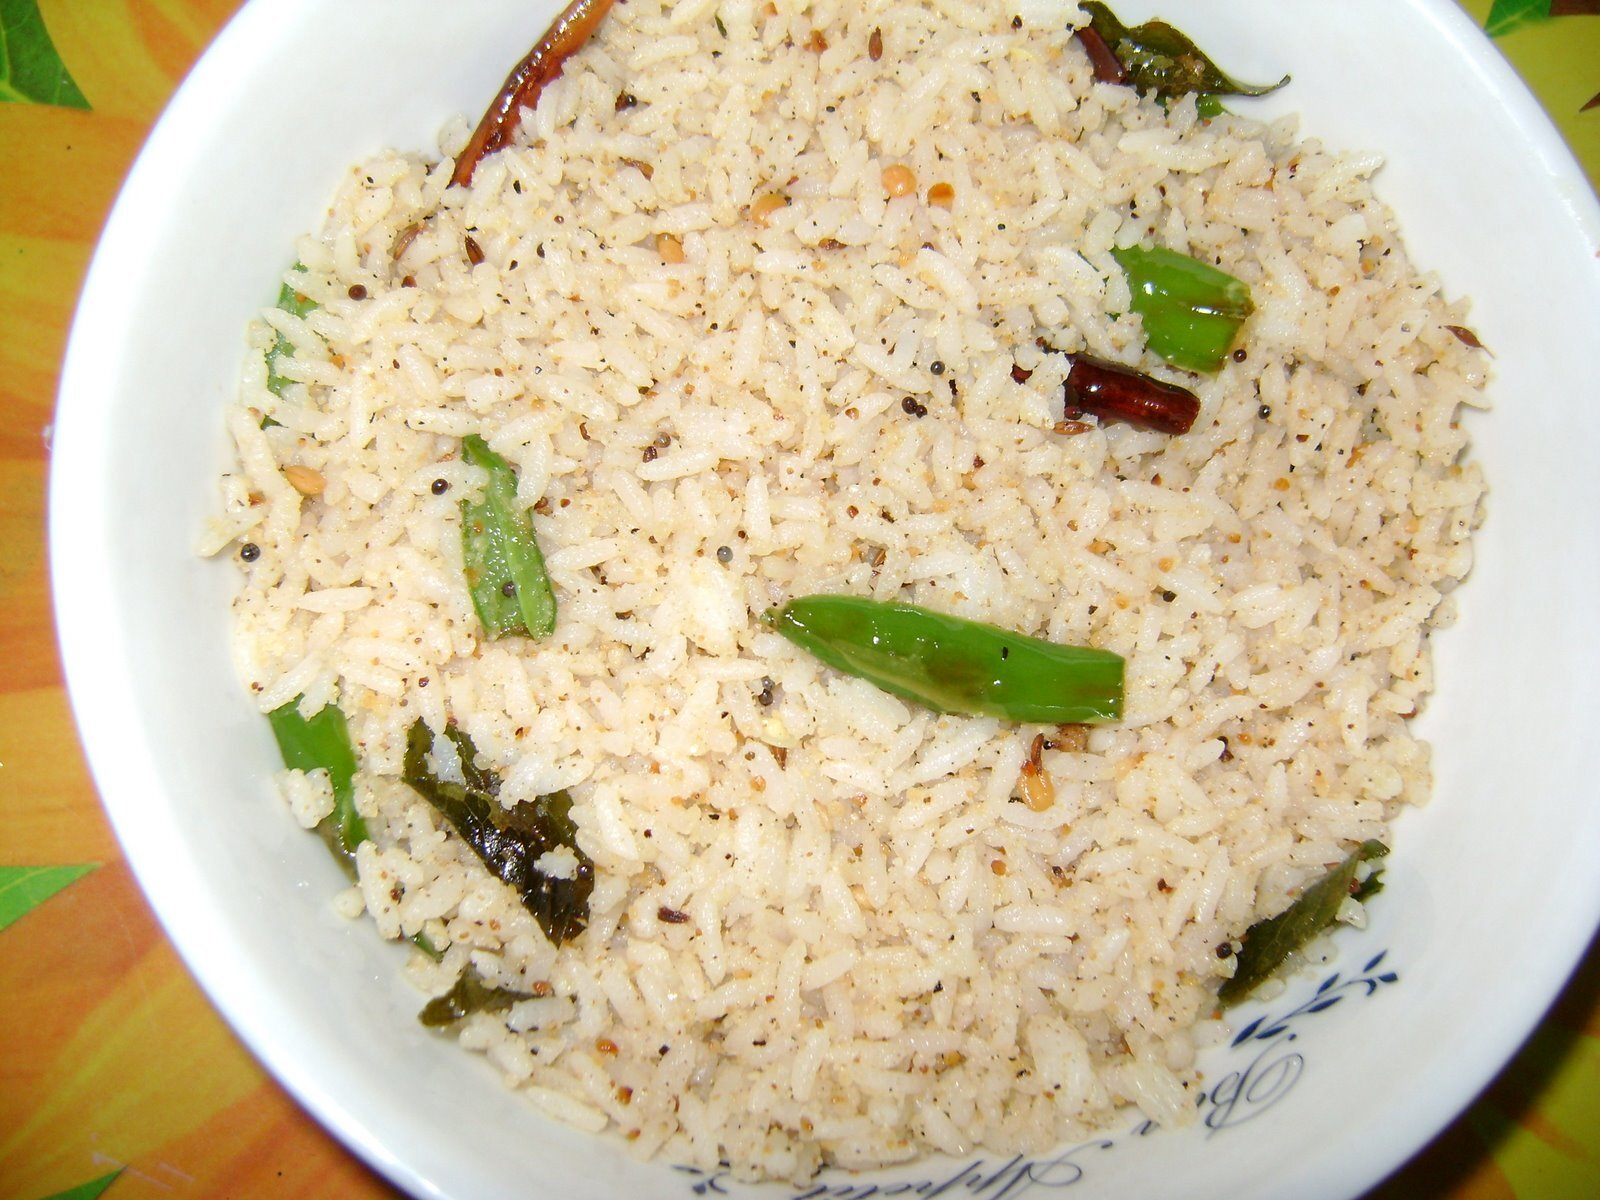 GARLIC GHEE MASALA RICE